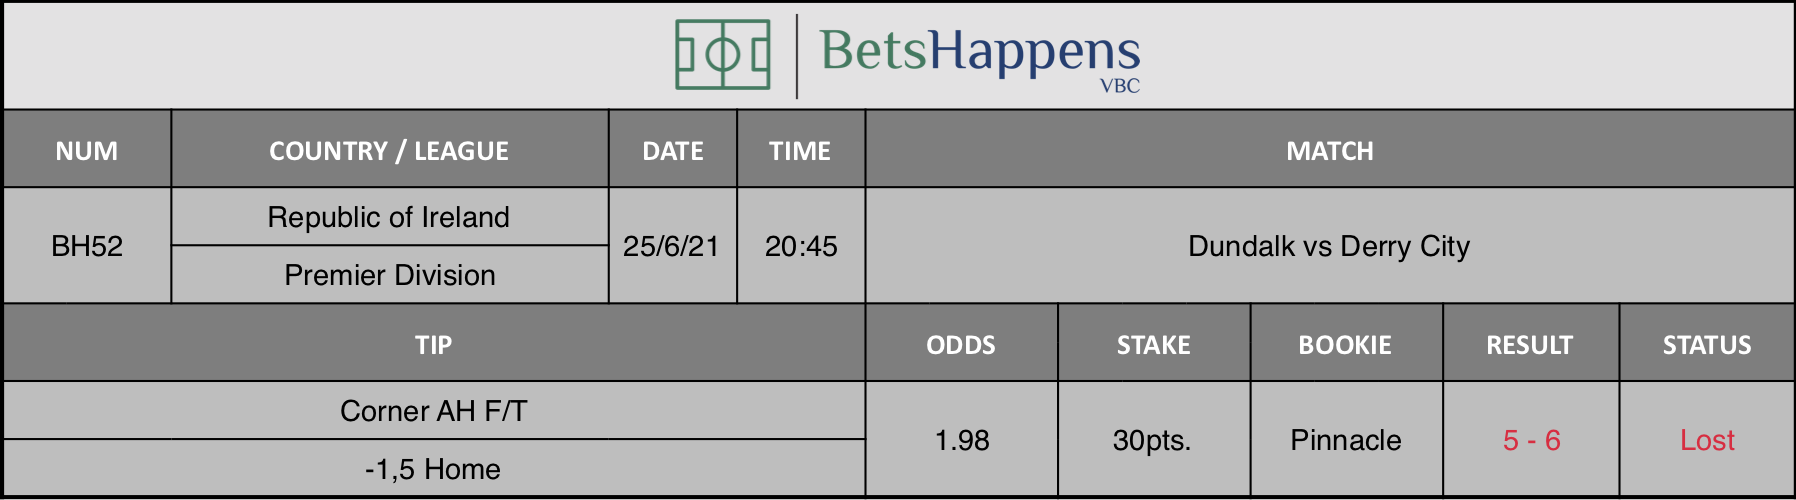 Results of our tip for the Dundalk vs Derry City match Corner AH F/T -1,5 Home is recommended.